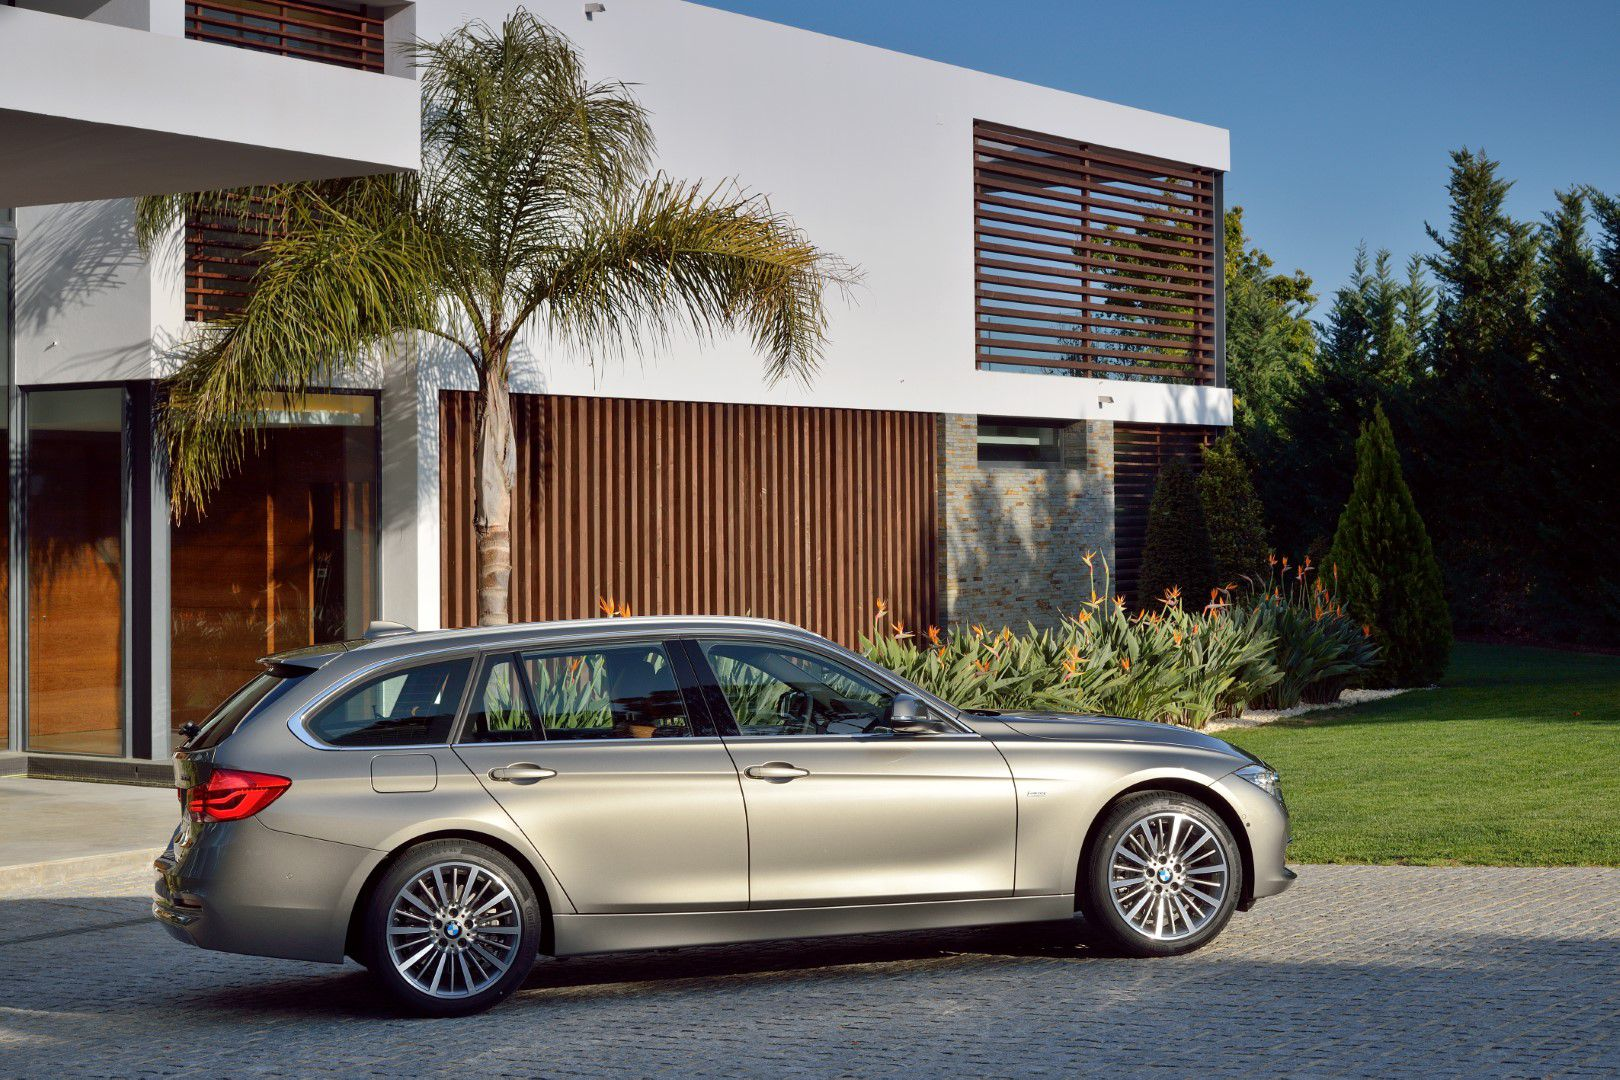 BMW řady 3 Touring | 330d | Luxury Line Edition